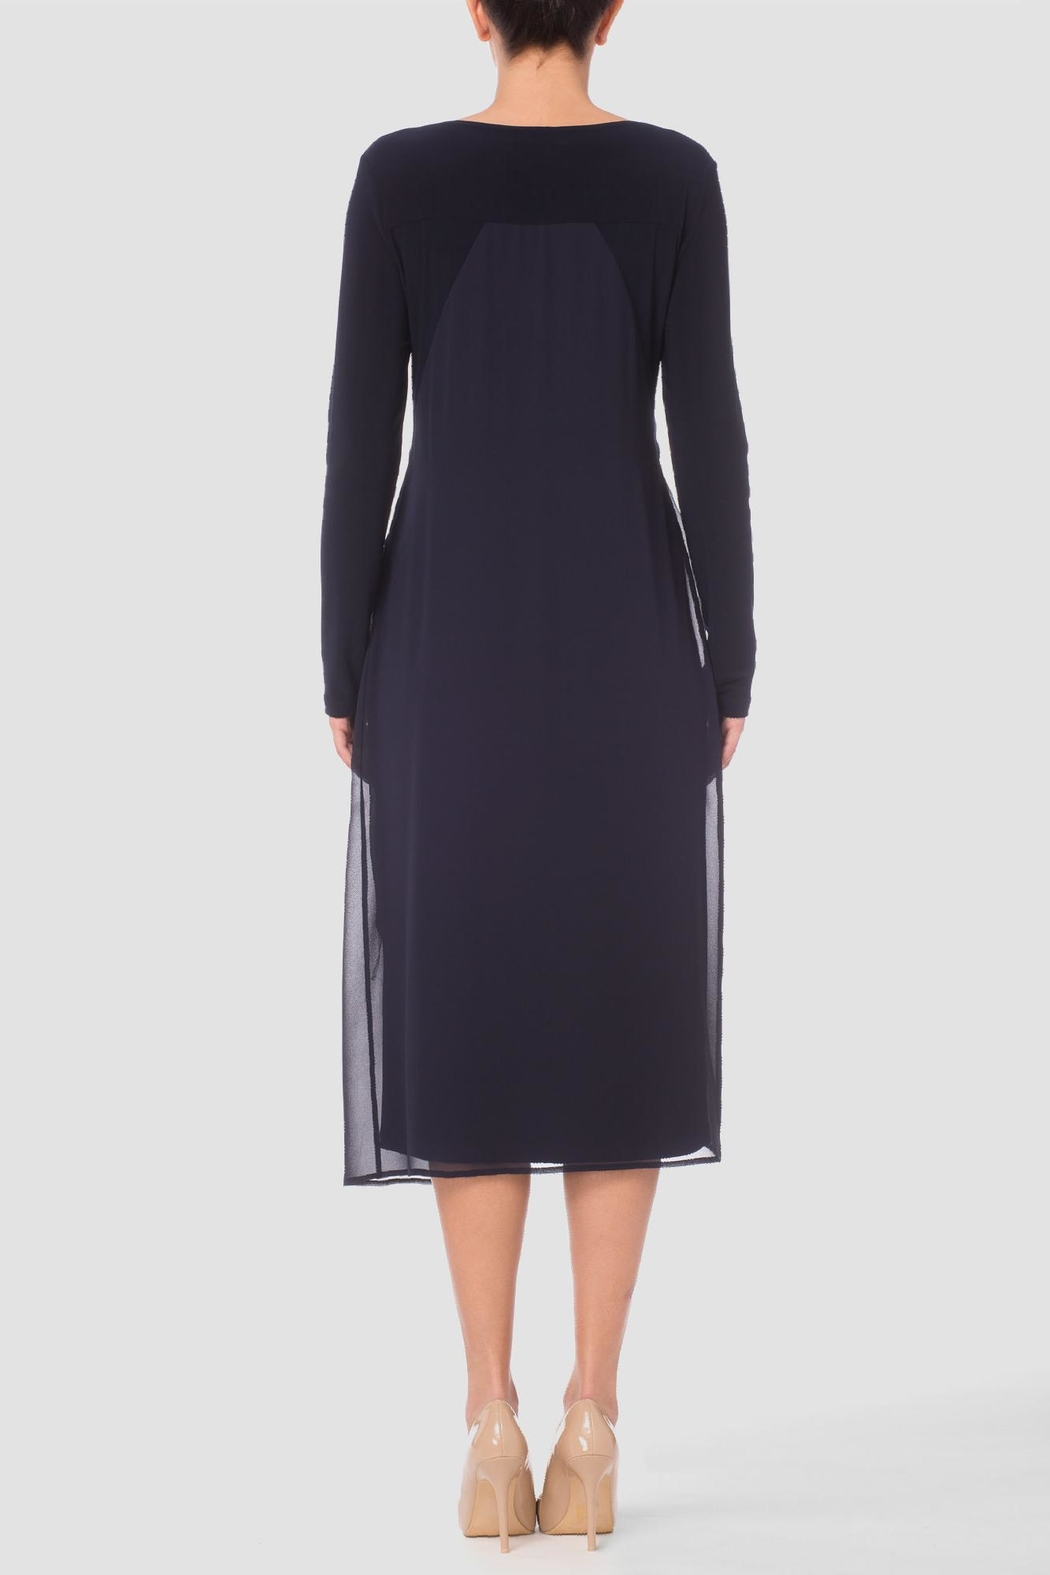 Joseph Ribkoff Bess Midnight Dress - Front Full Image